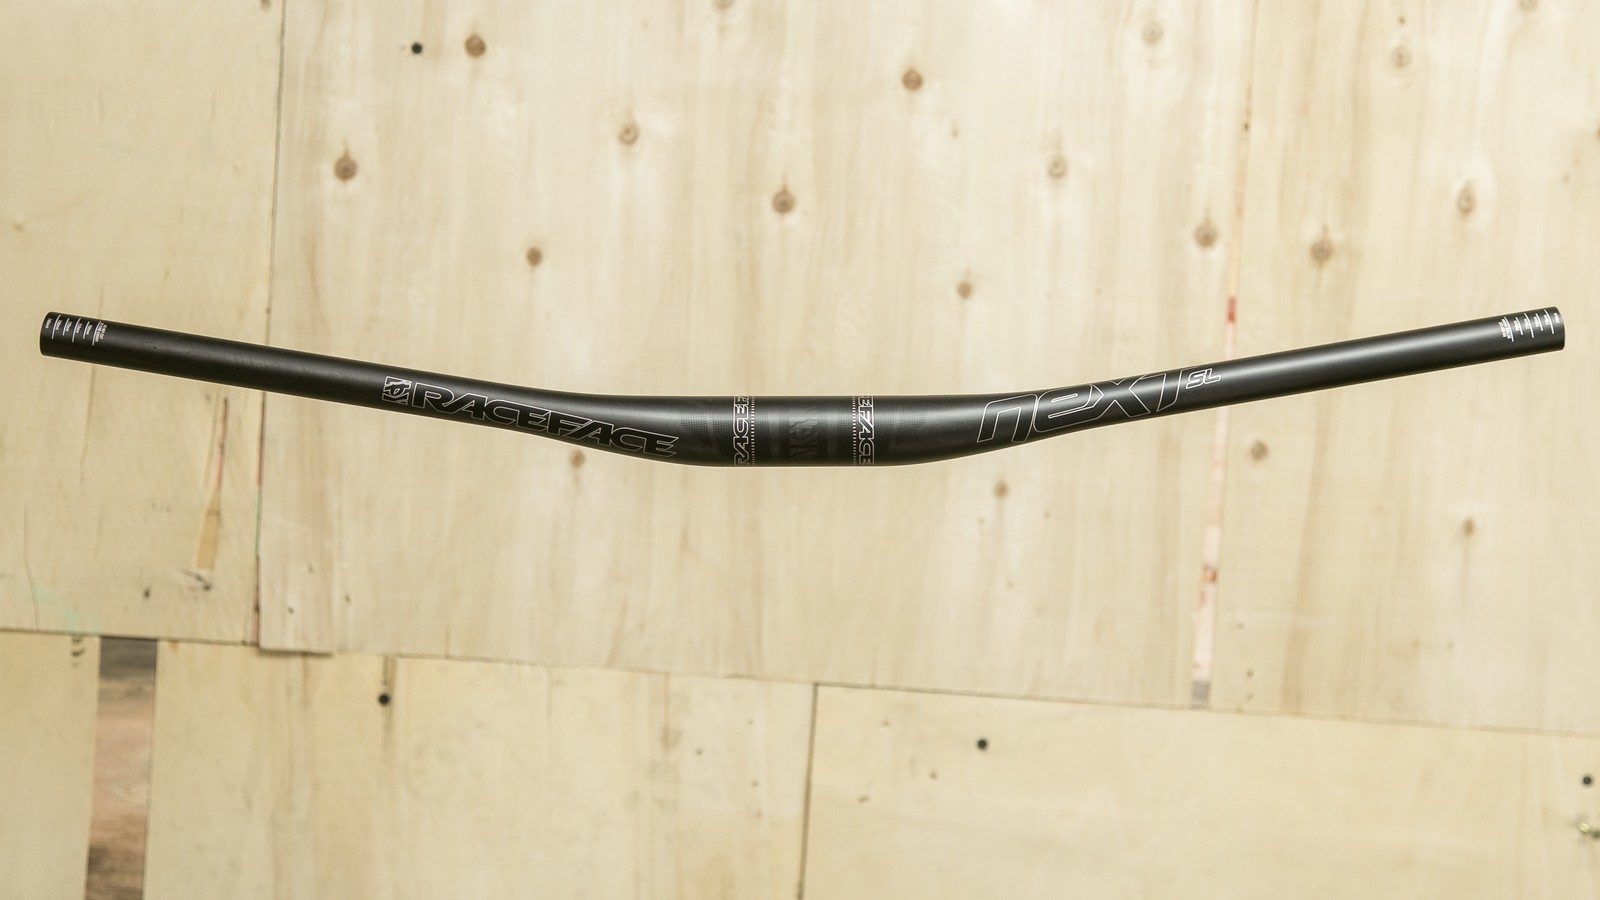 Only 167g - New Race Face Next SL Handlebar (and Gulevich is Hilarious!)